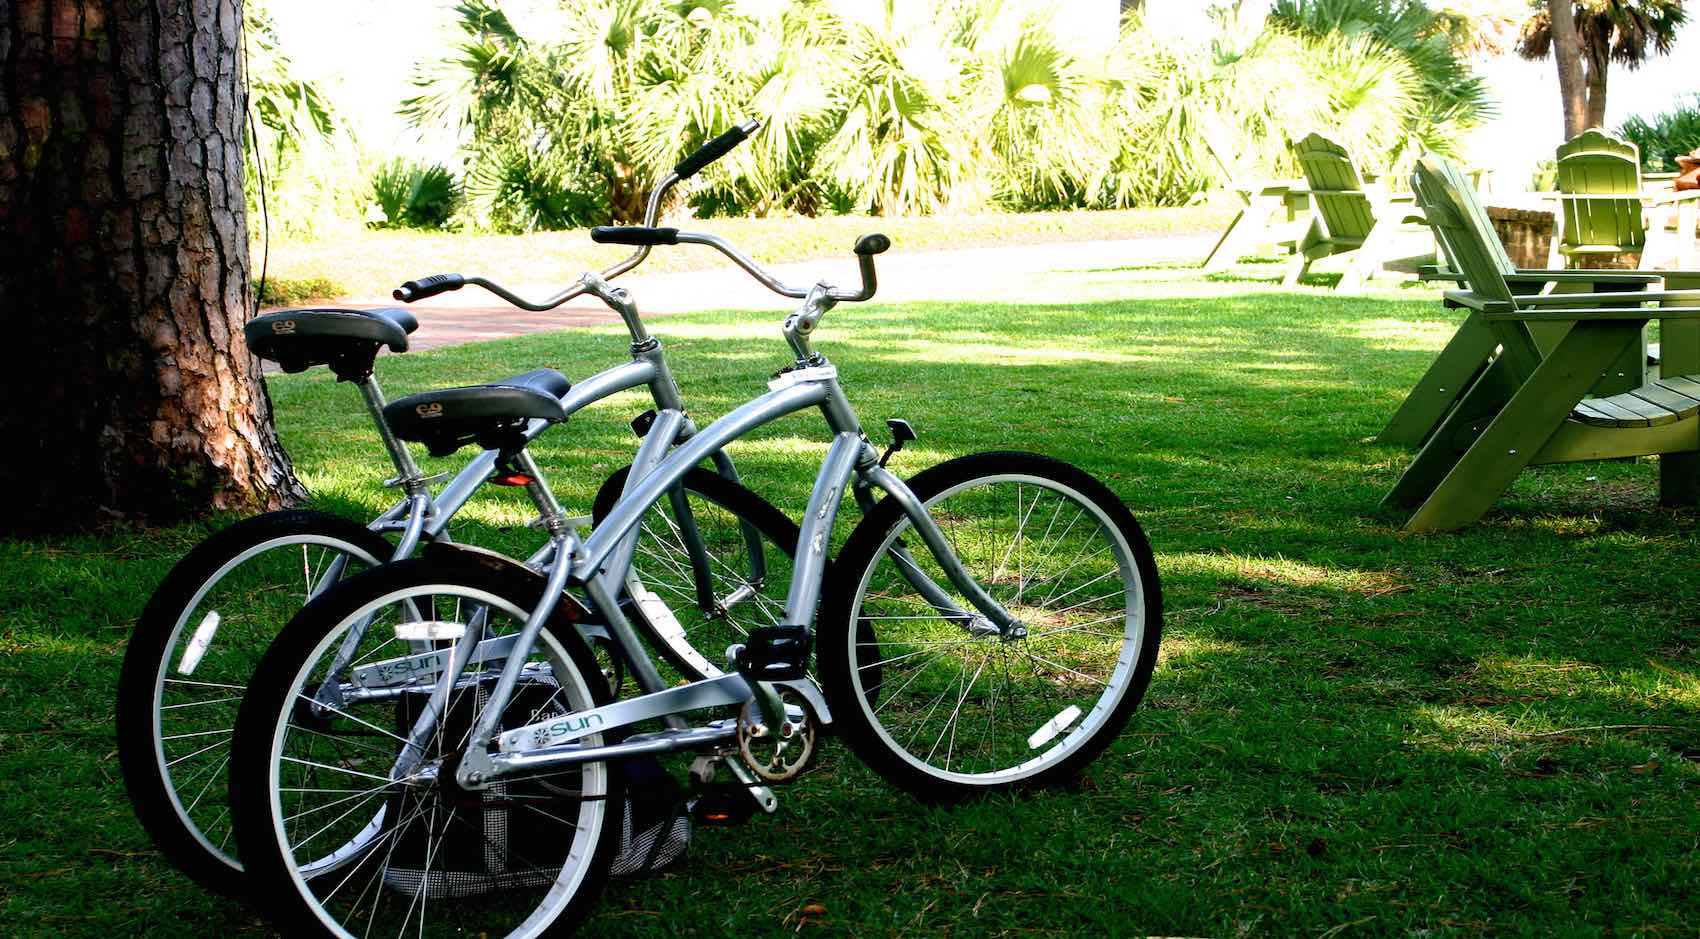 Two bikes by a tree in a park